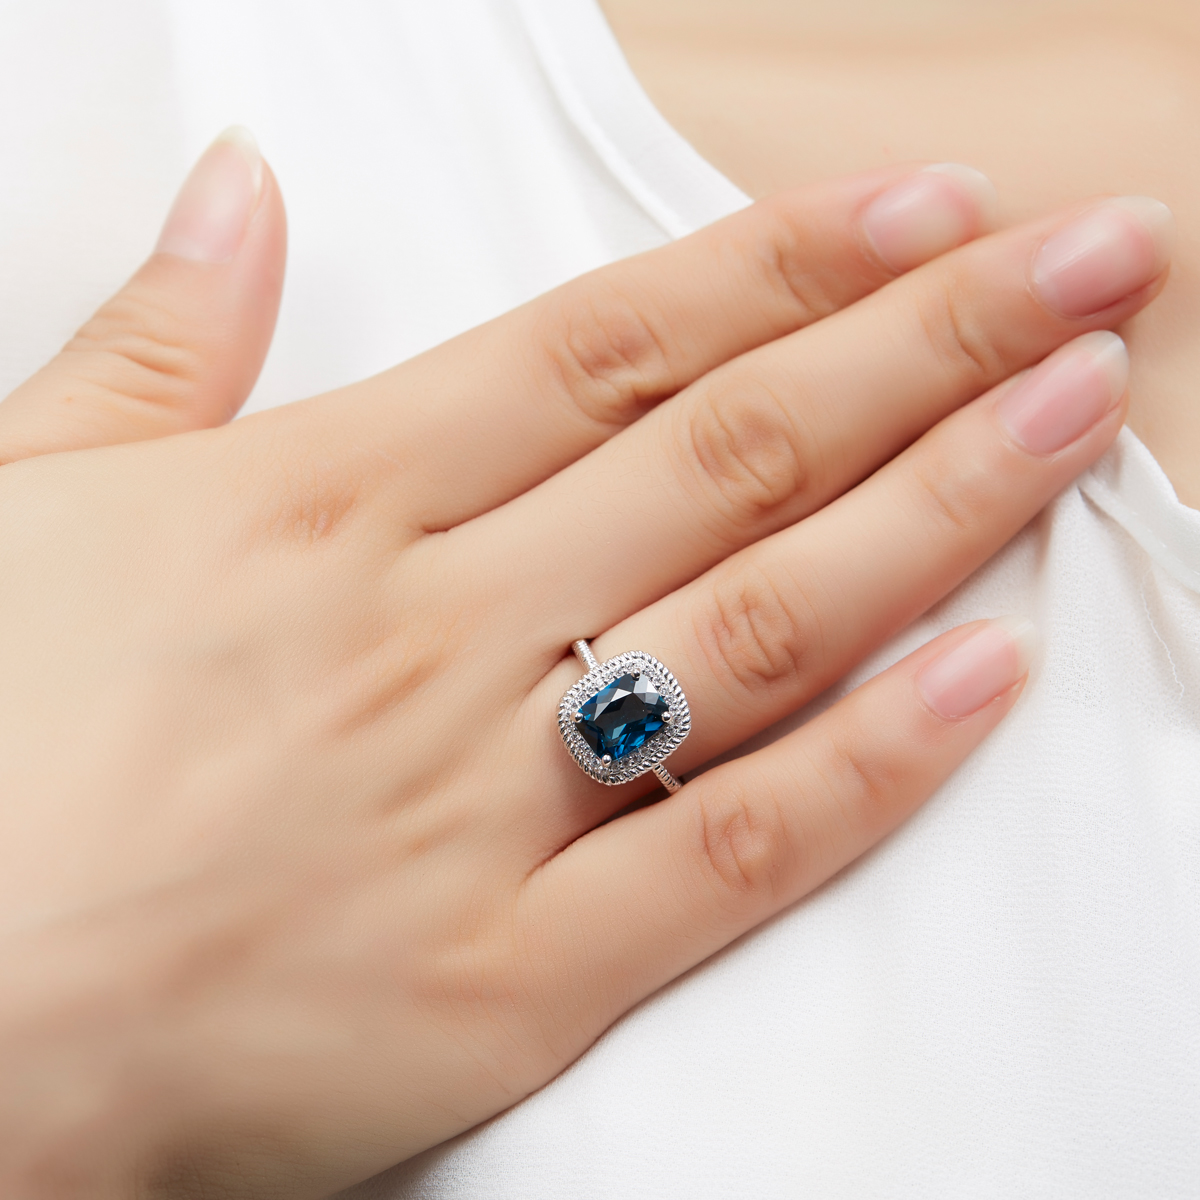 Hutang Genuine London Blue Topaz Ring Solid 925 Sterling Silver Gemstone Fine Jewelry Women Wedding Party Brand Jewelry allblue new jerkbait professional 100dr fishing lure 100mm 15 8g suspend wobbler minnow depth 2 3m bass pike bait mustad hooks